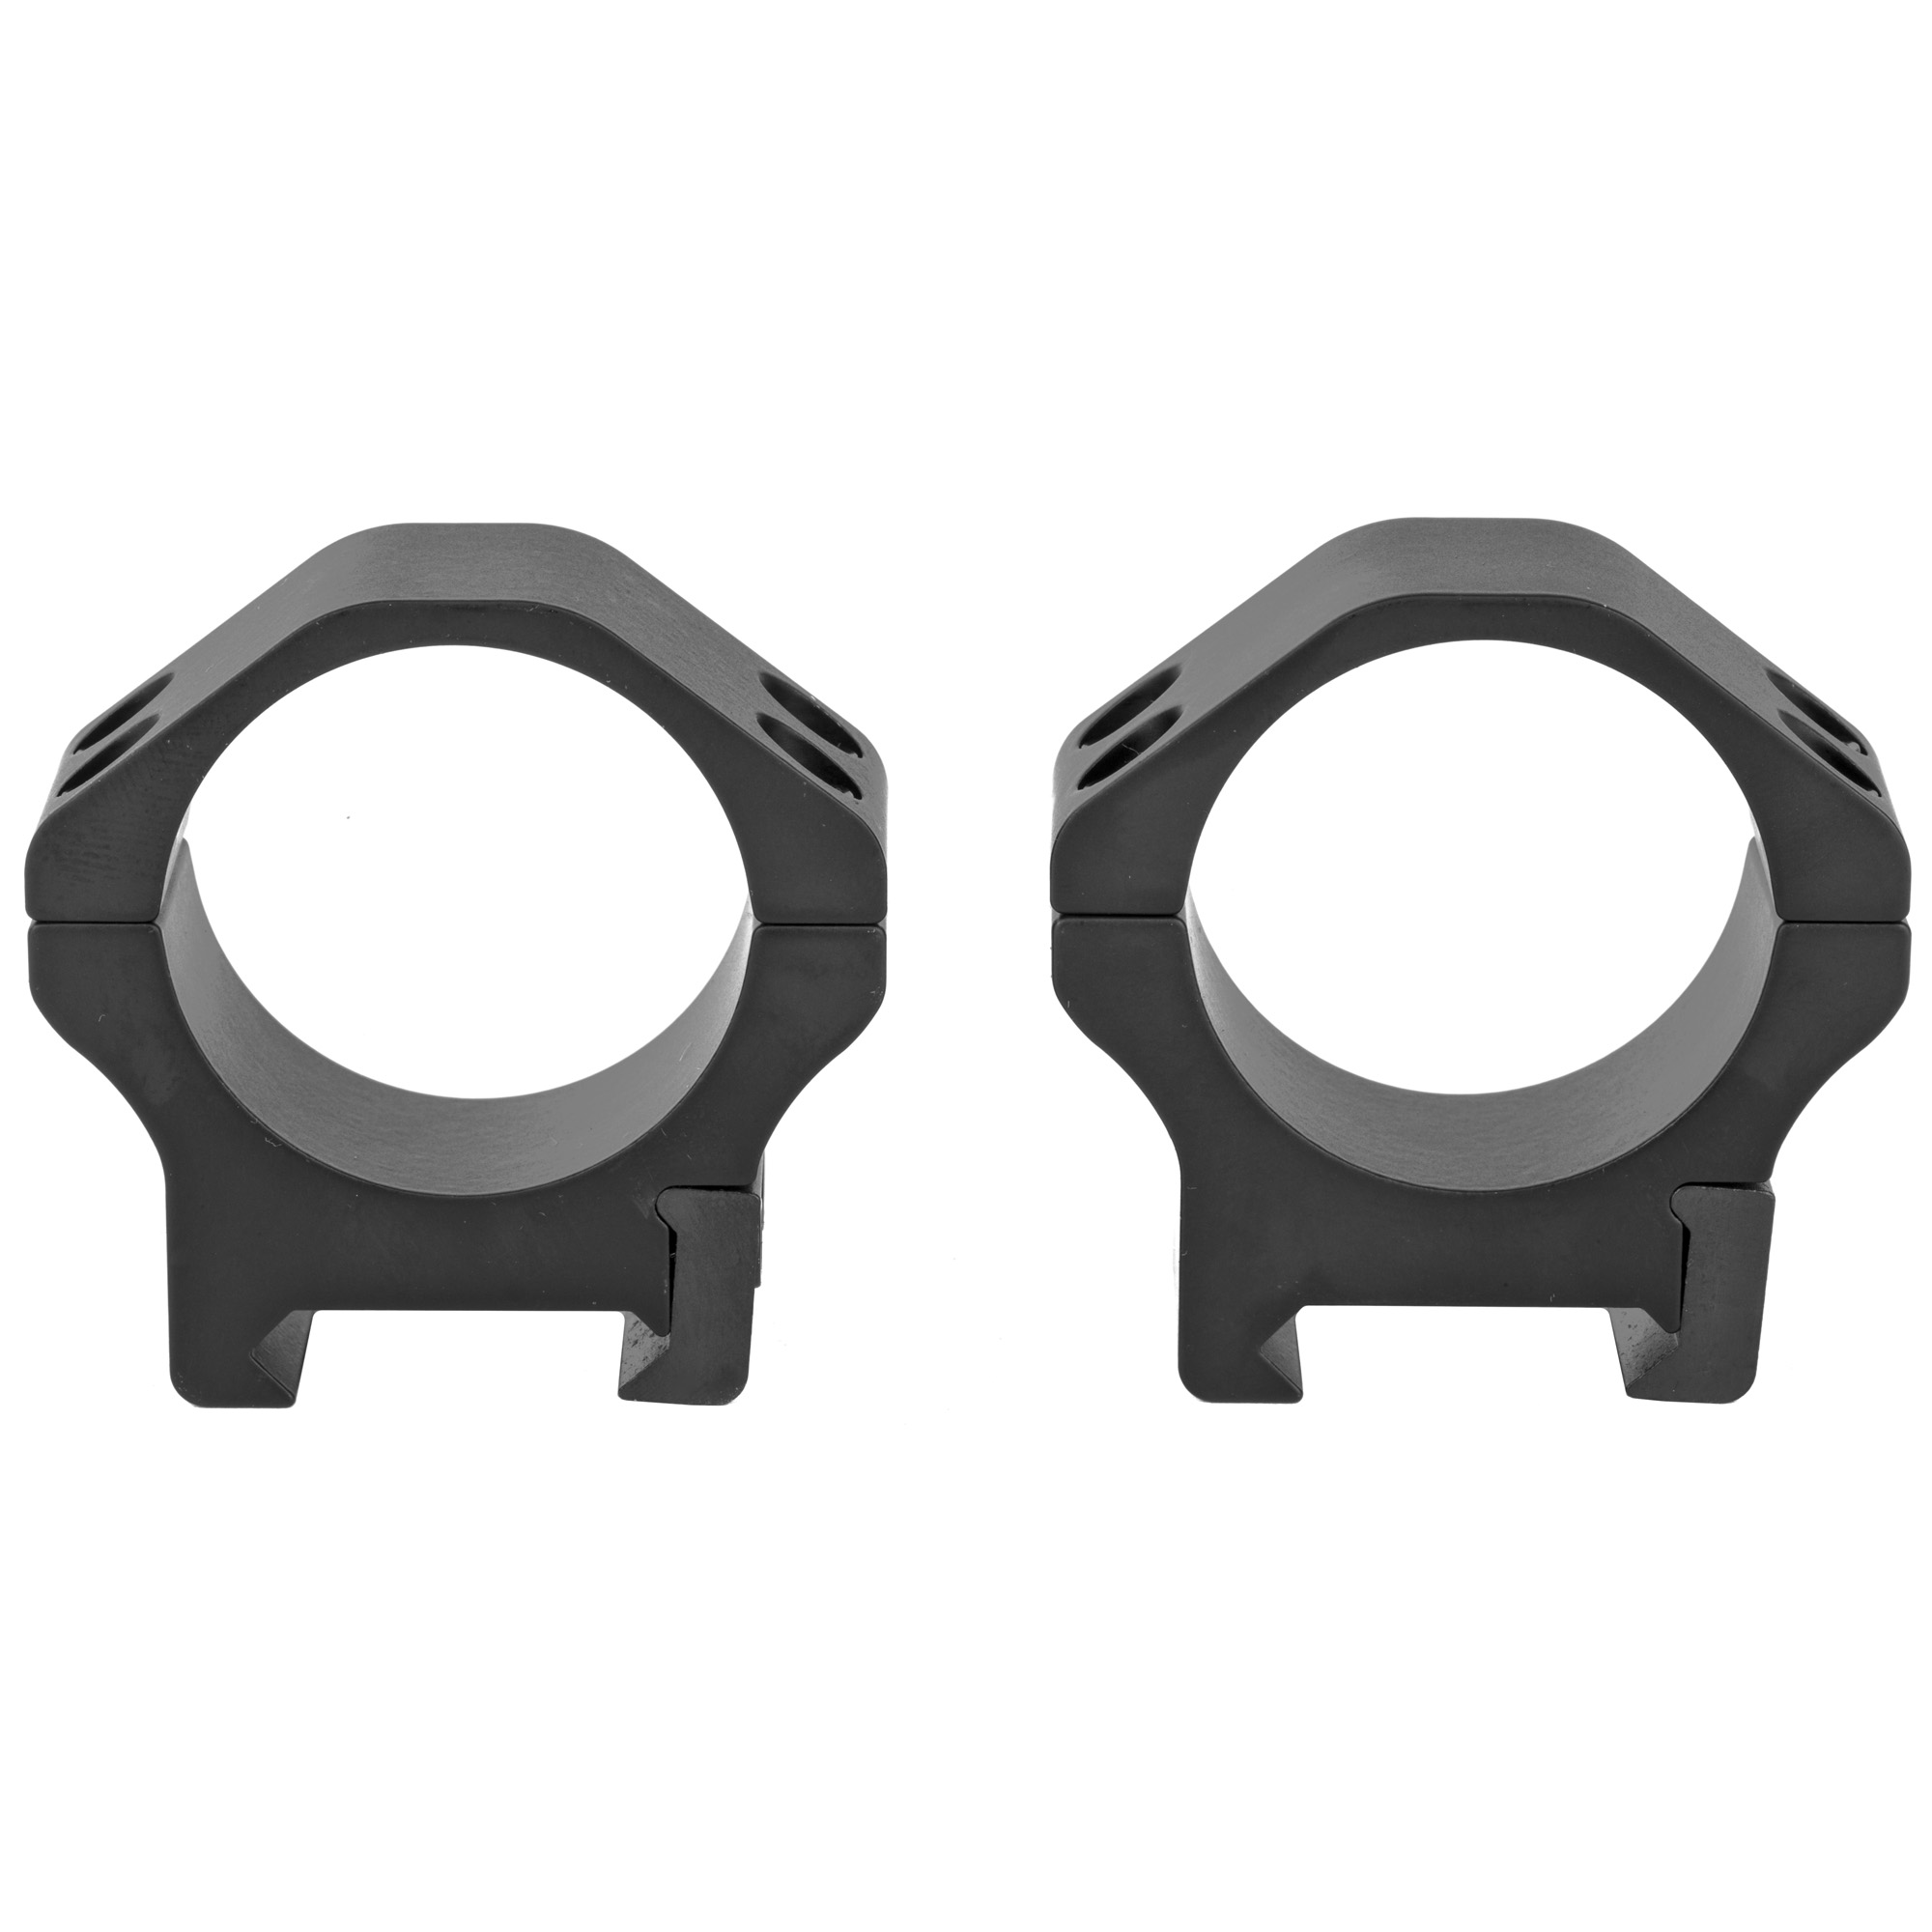 """Maxima Horizontal scope rings are designed"""" engineered and manufactured by Warne's expert staff in Tualatin"""" Oregon. Utilizing proprietary sintered steel technology"""" Maxima Horizontal offers unwavering strength and precision in a stylish"""" yet traditional form. 4 screw ring caps"""" along with a unique recoil key and clamp offer easy installation and unrivaled holding strength. With classic lines"""" and Warne's return to zero guarantee"""" Maxima Horizontal are the new standard."""